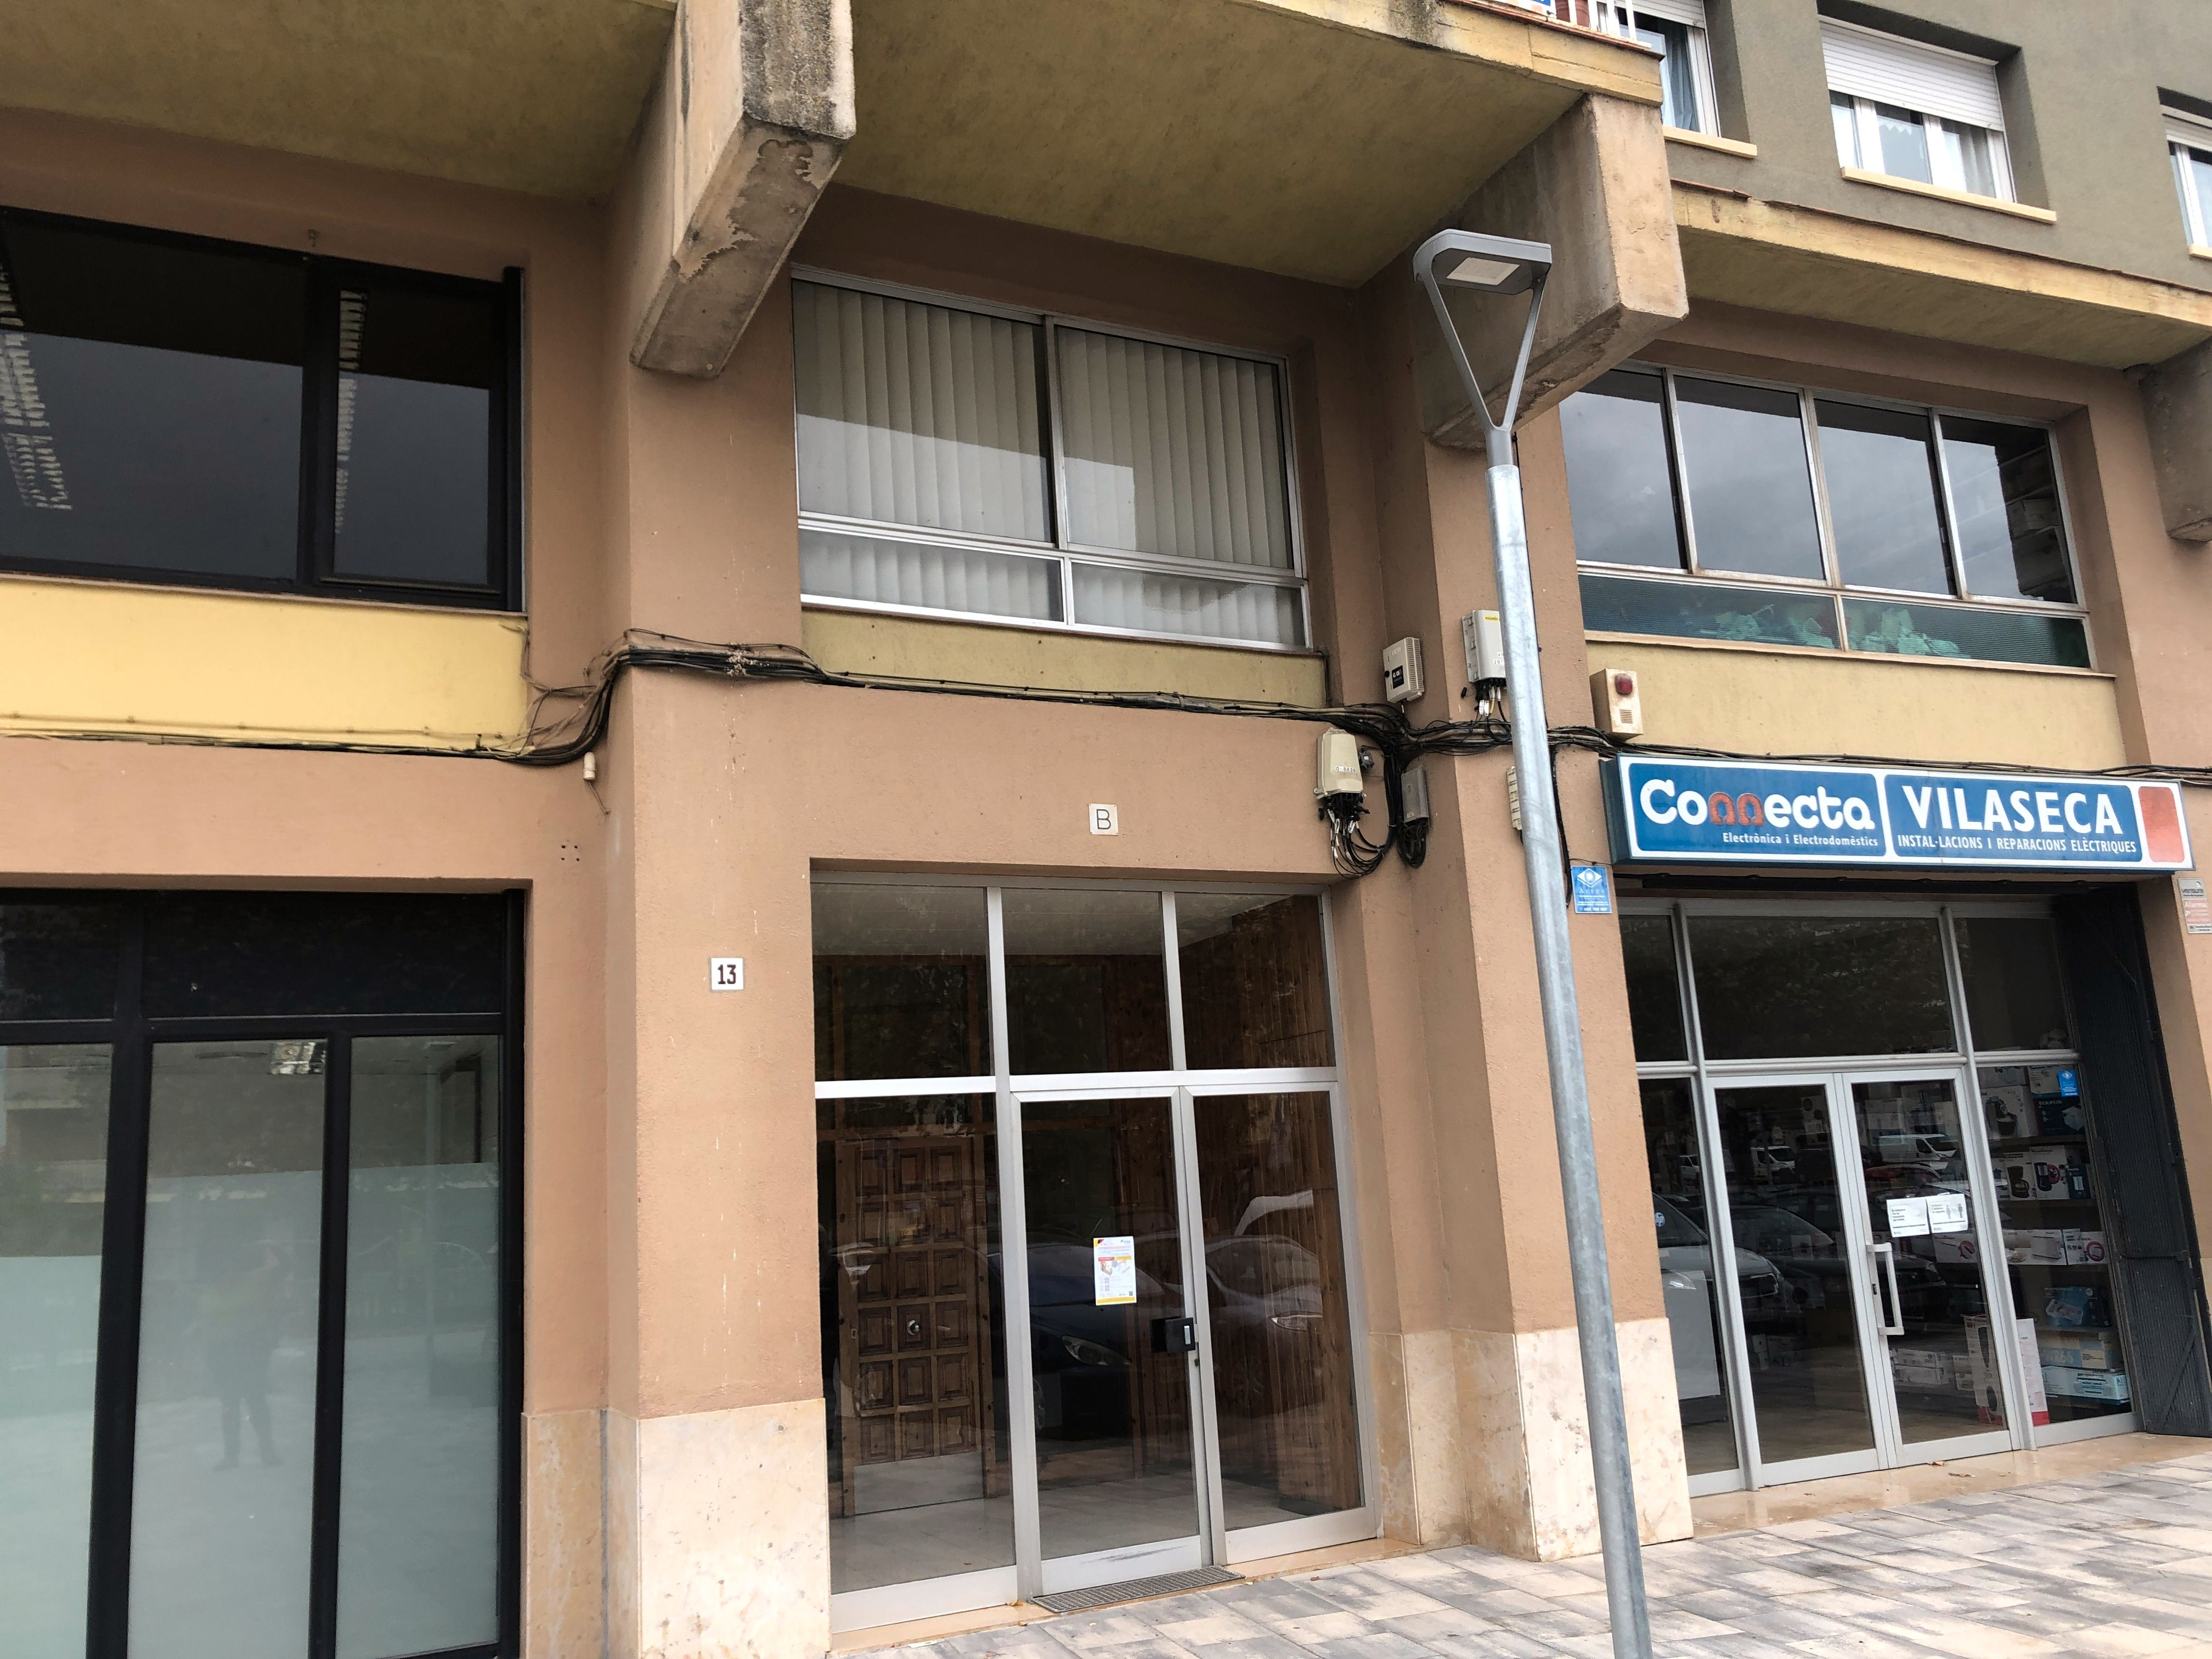 Locale commerciale in Solsona